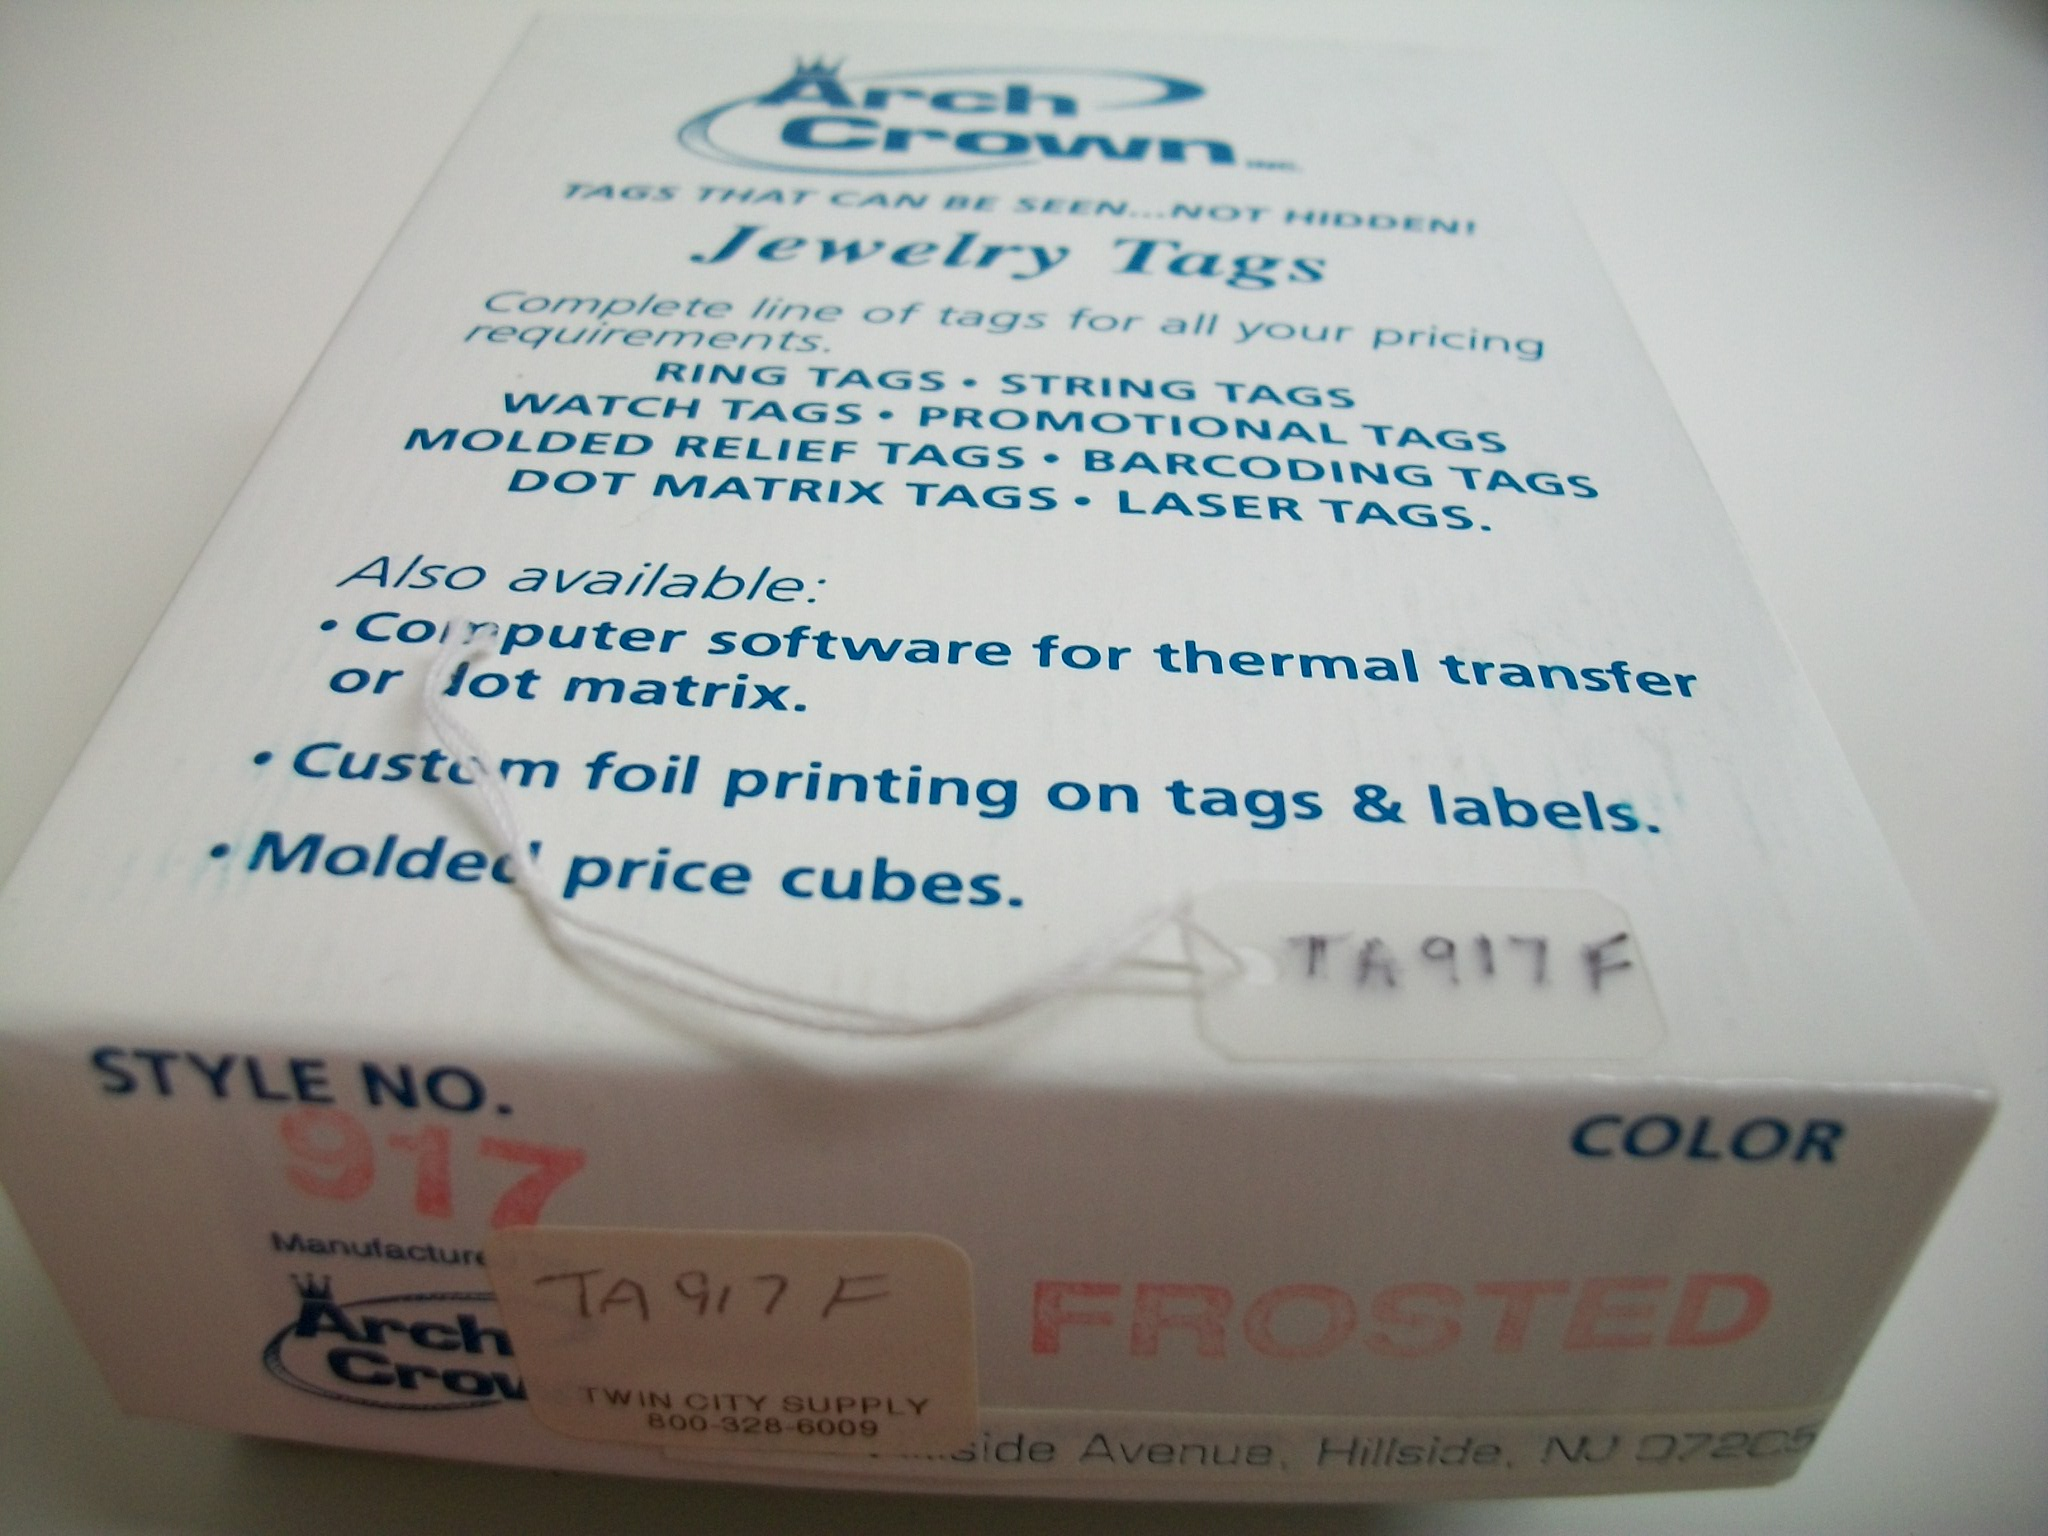 TA917F Arch Crown String Tags--Frosted Bx of 1000